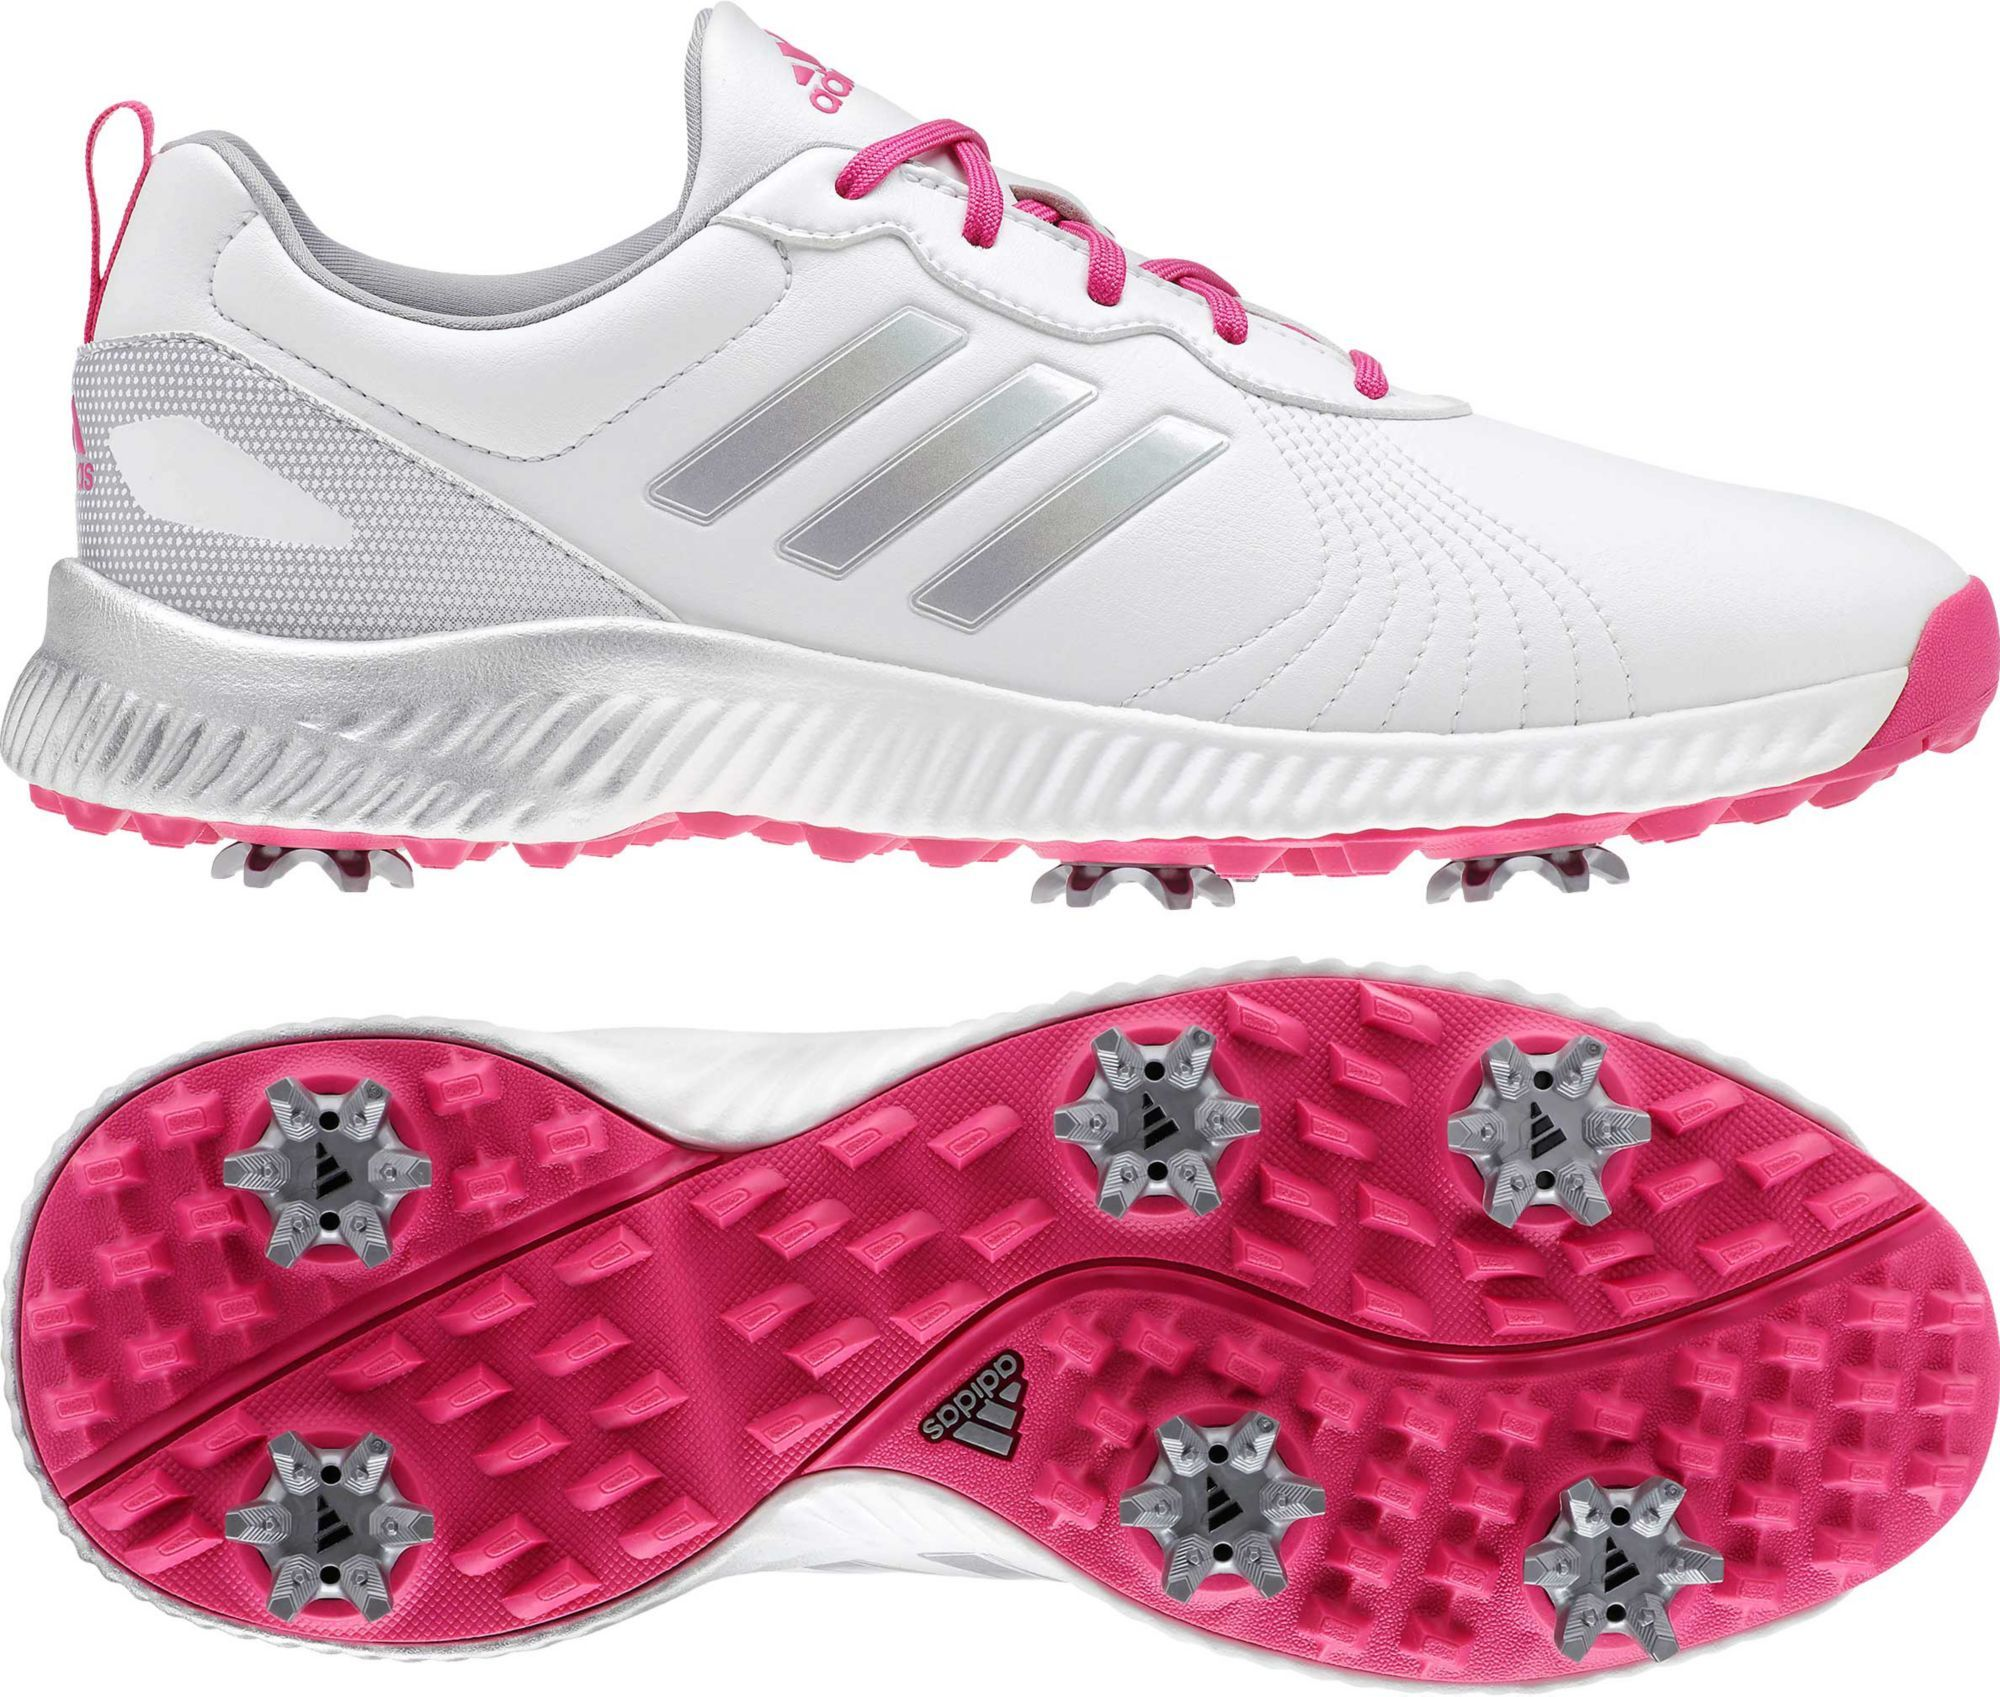 132ad7b71 adidas Women s Response Bounce Golf Shoes